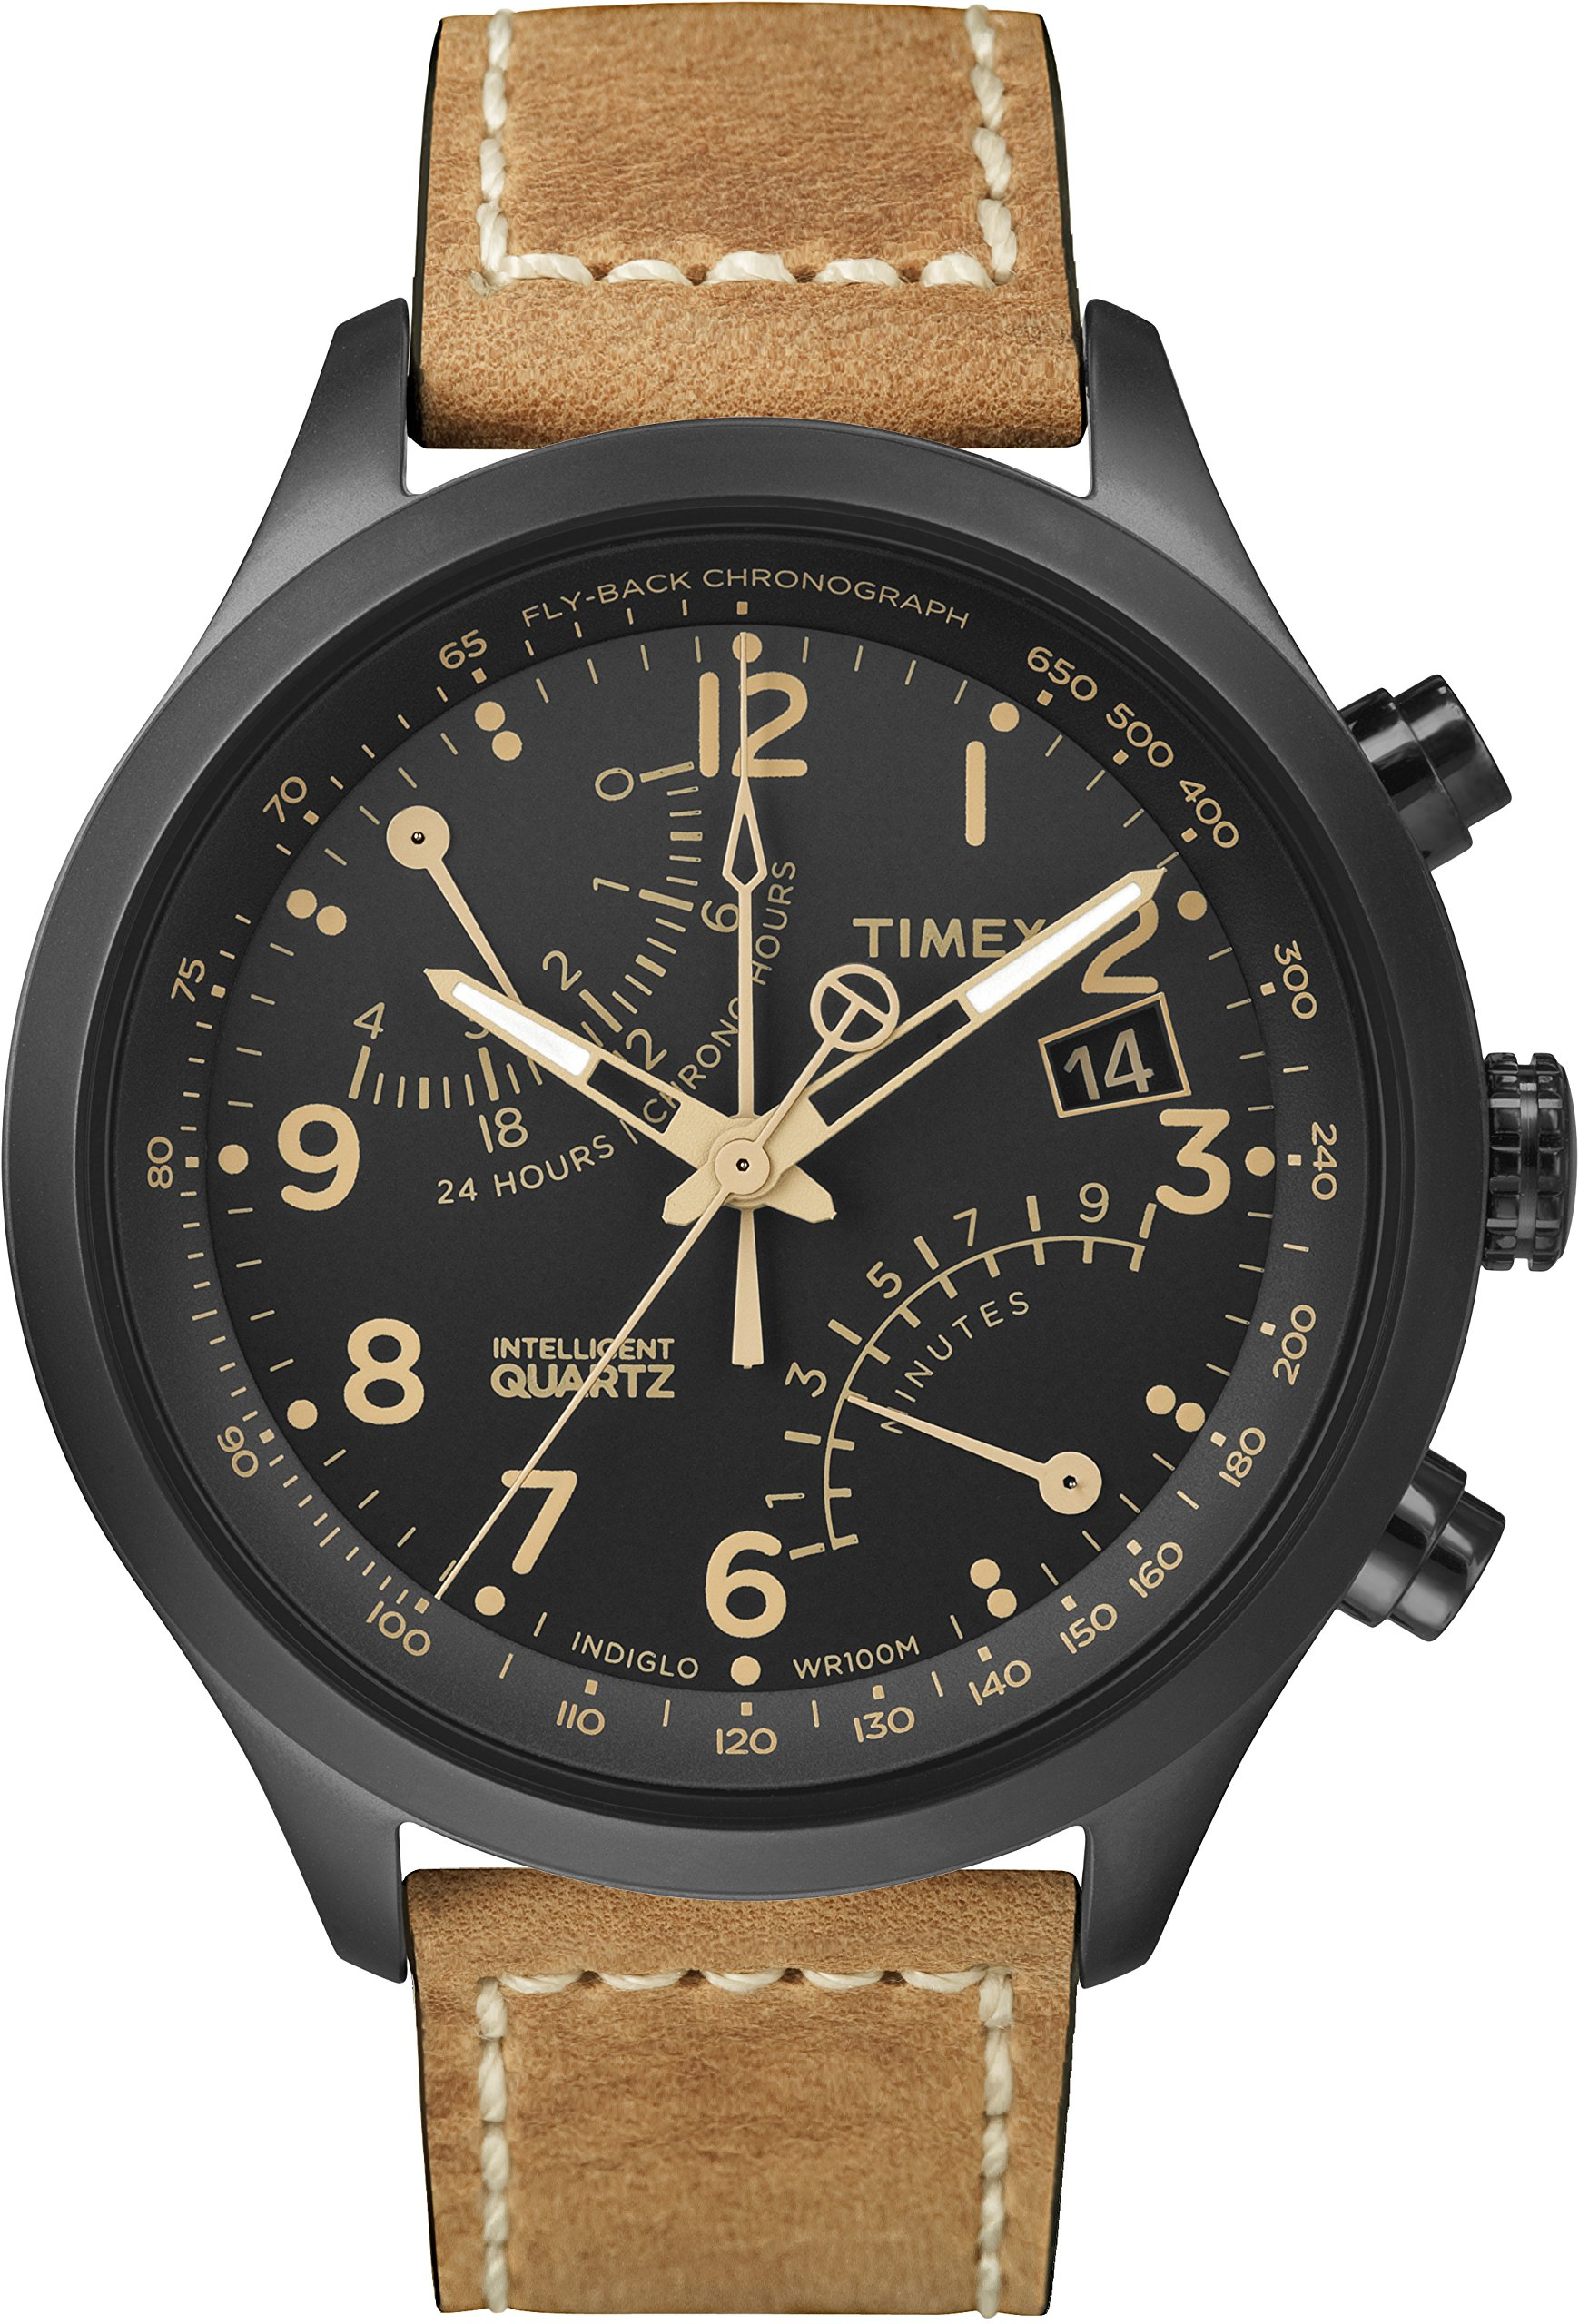 Timex Intelligent Quartz Flyback Chronograph Gunmetal Ion-plated Mens Watch T2N700